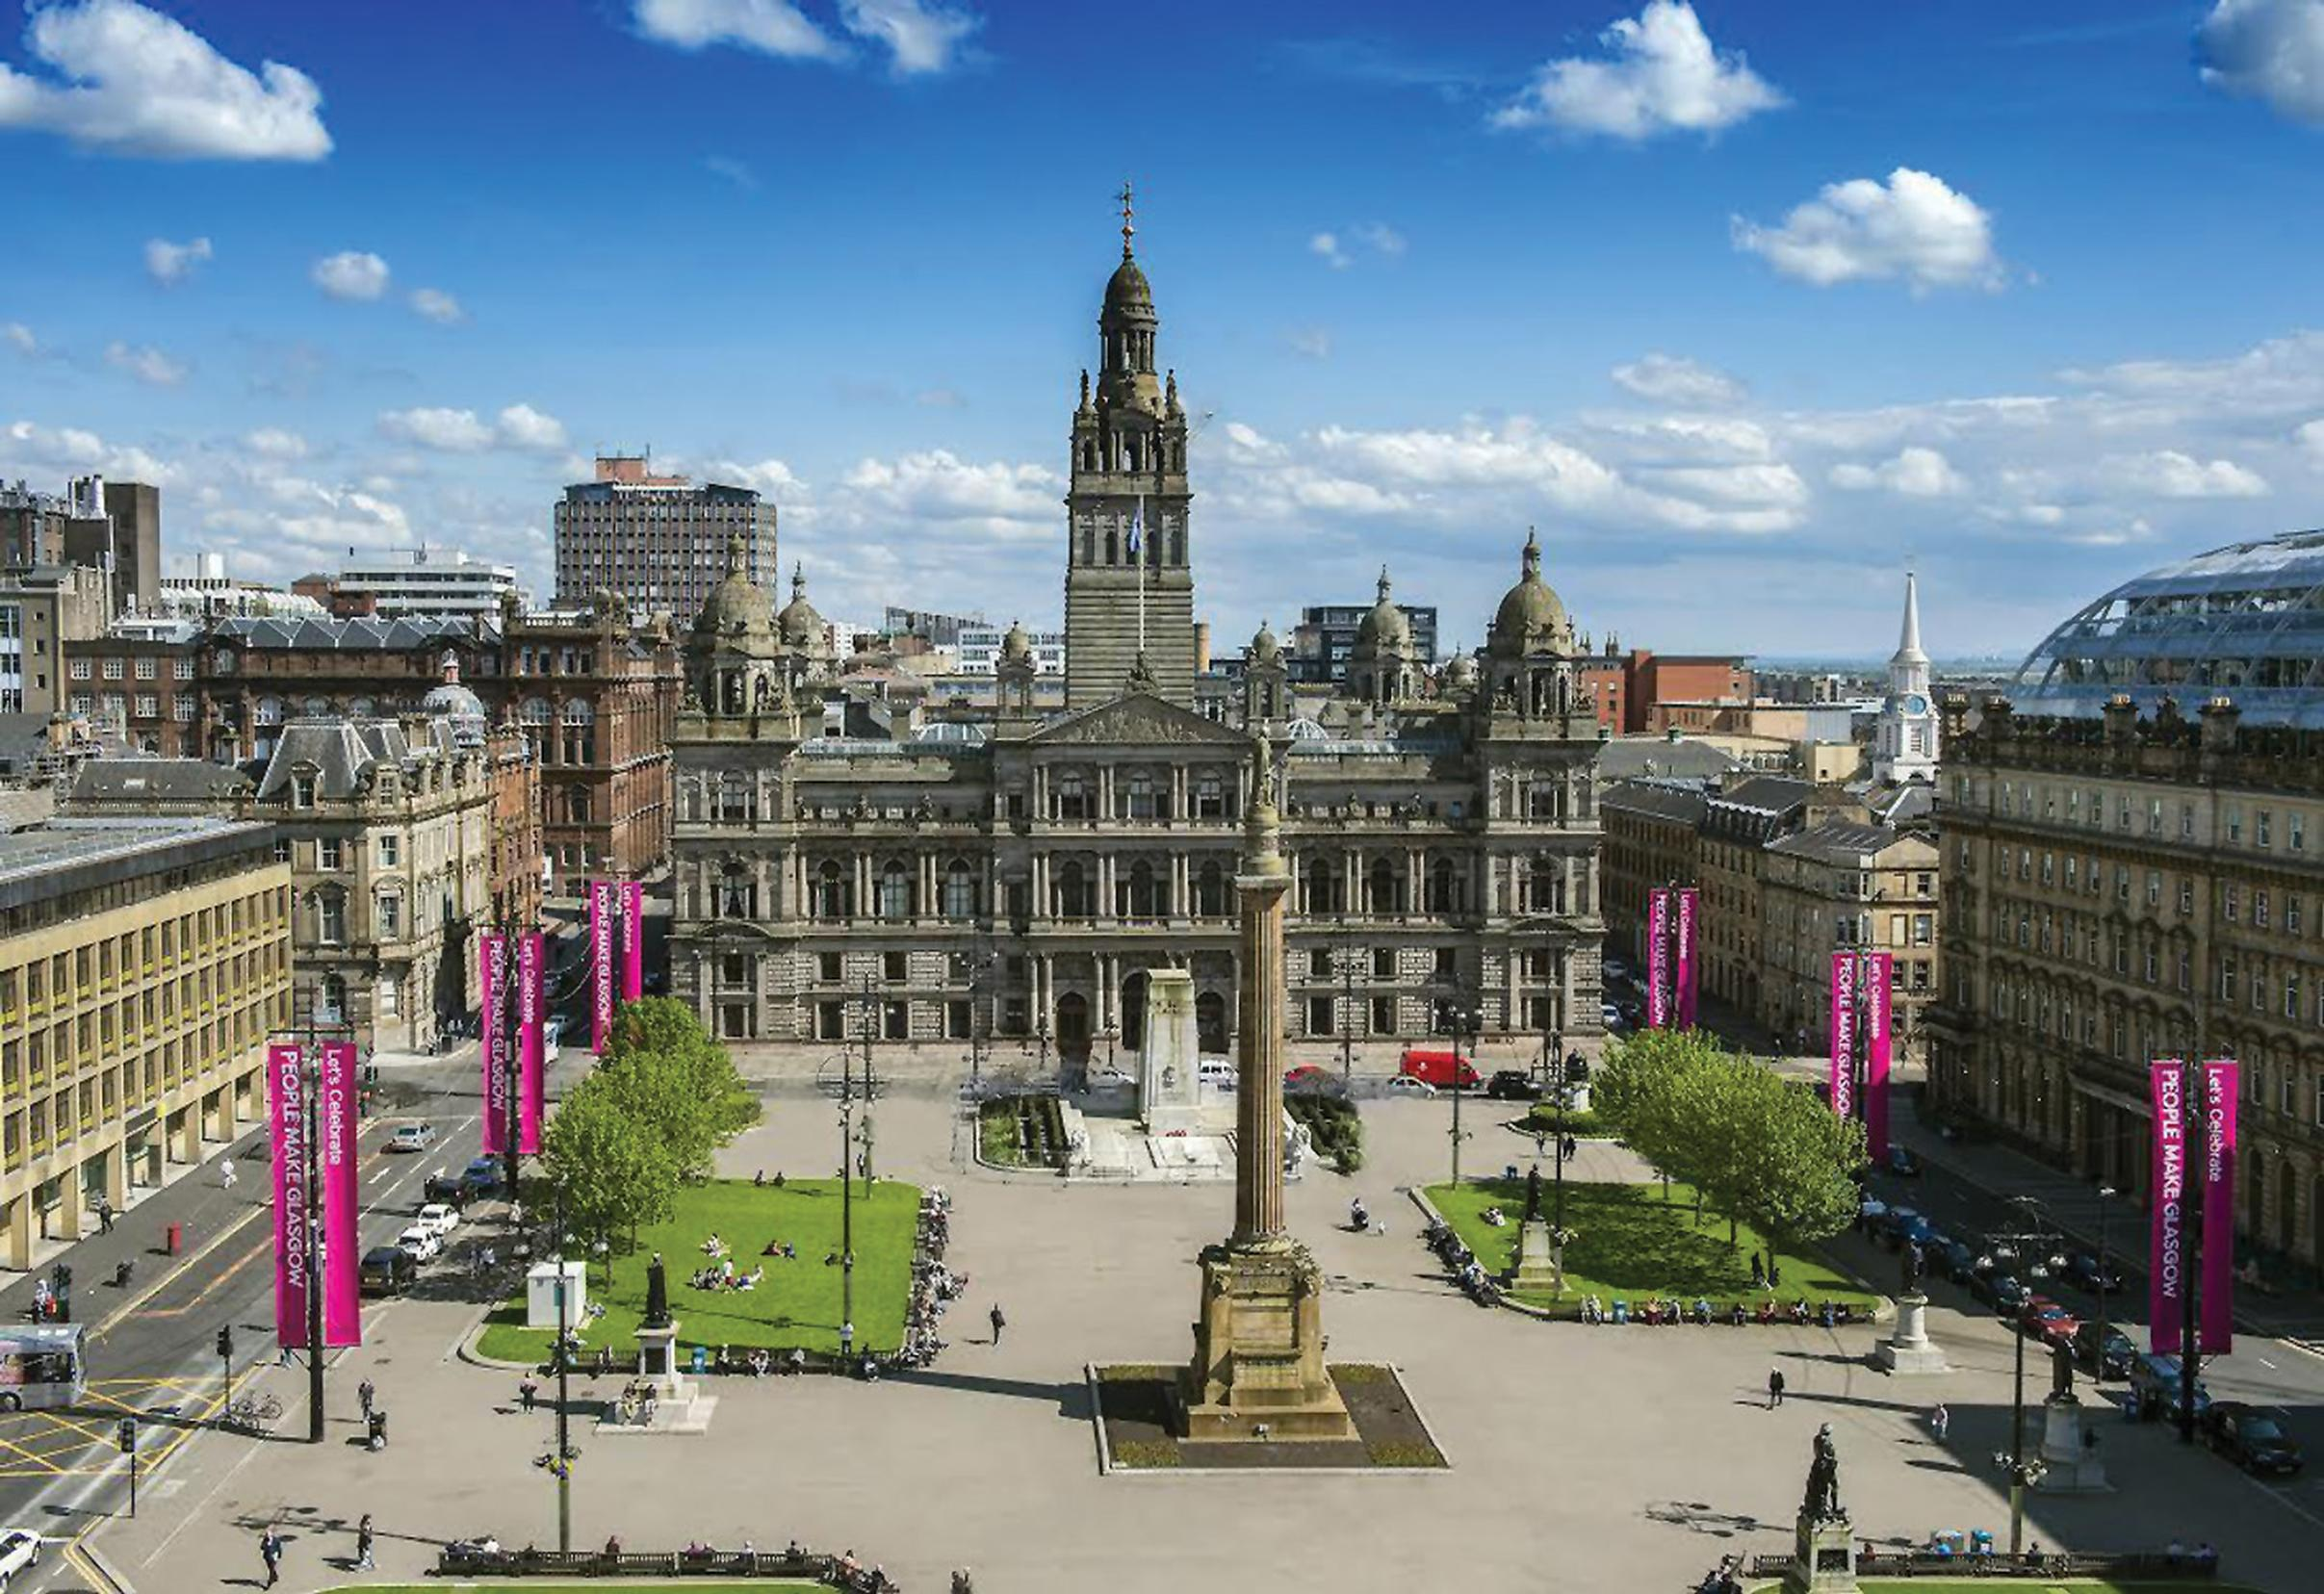 George Square: unique in allowing traffic on all four sides?